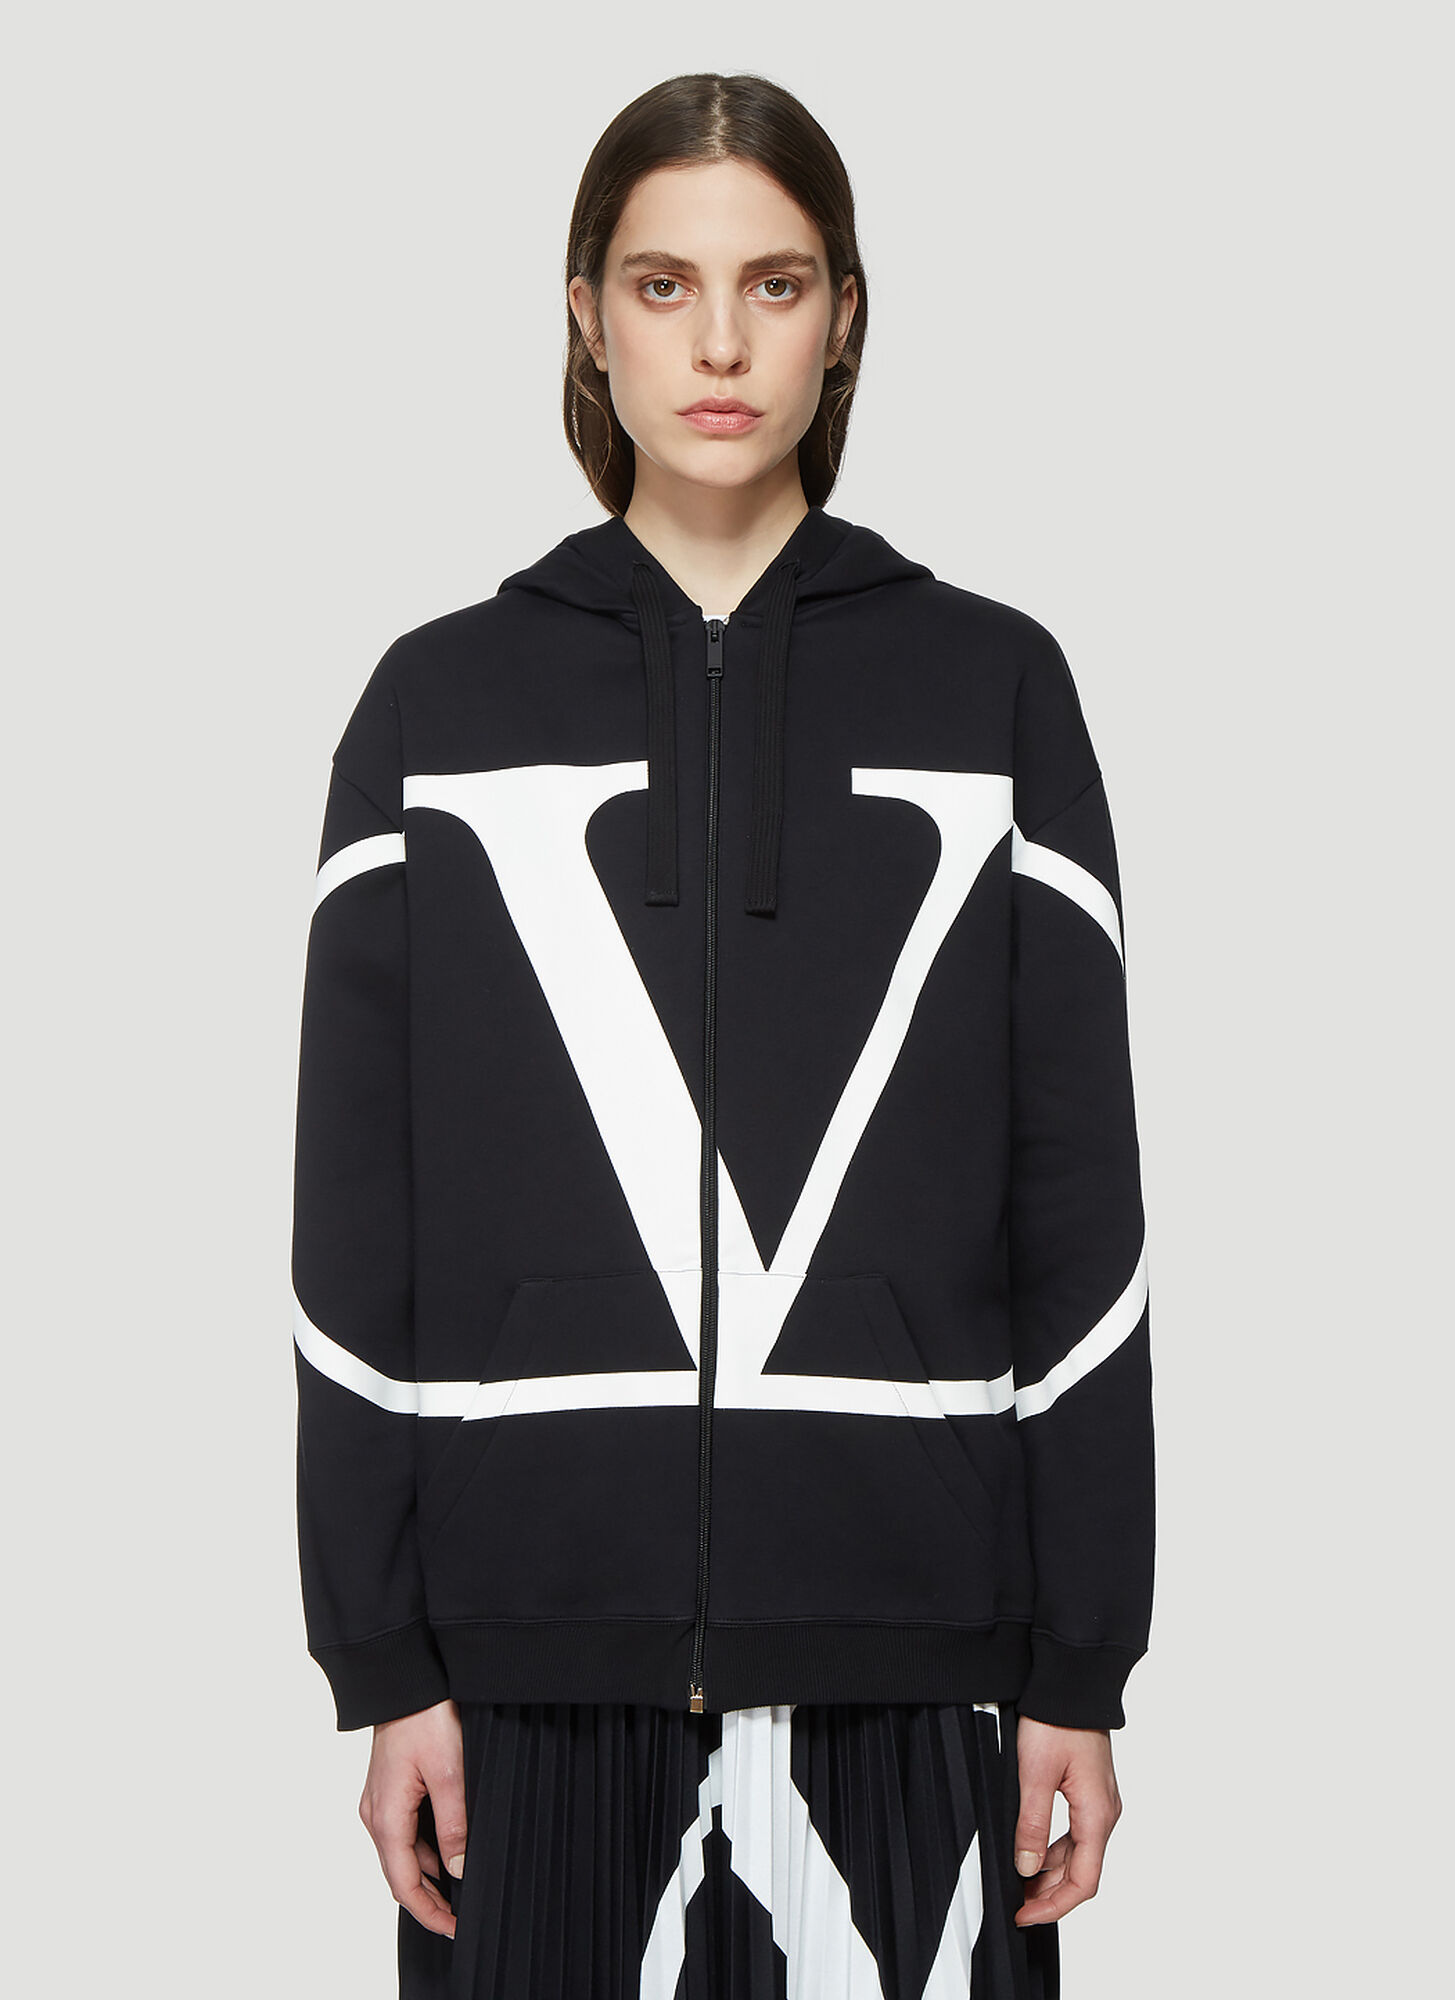 Valentino Logo Zip Up Hooded Sweatshirt in Black